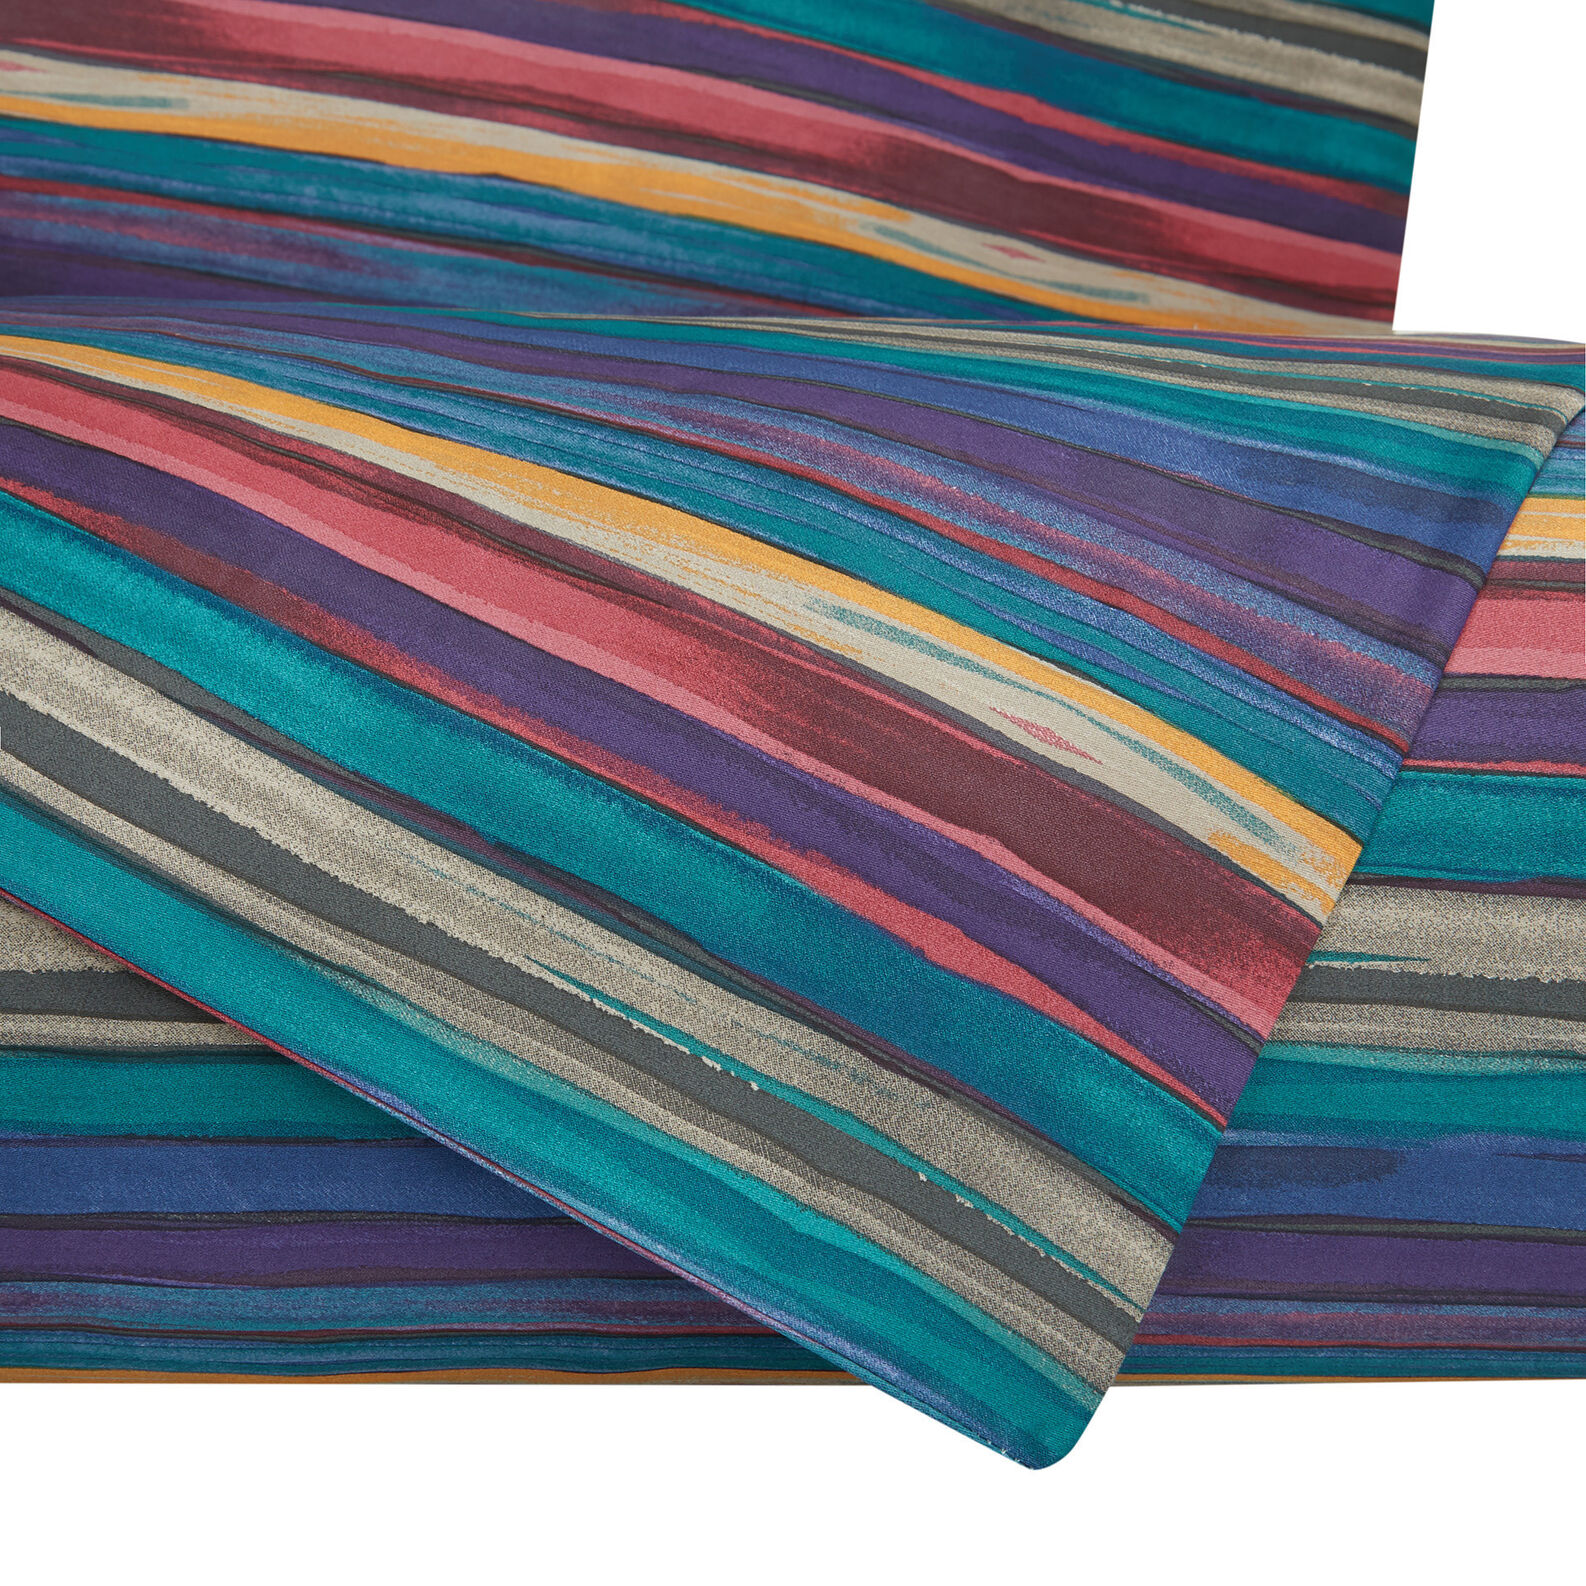 Flat sheet in cotton satin with striped pattern